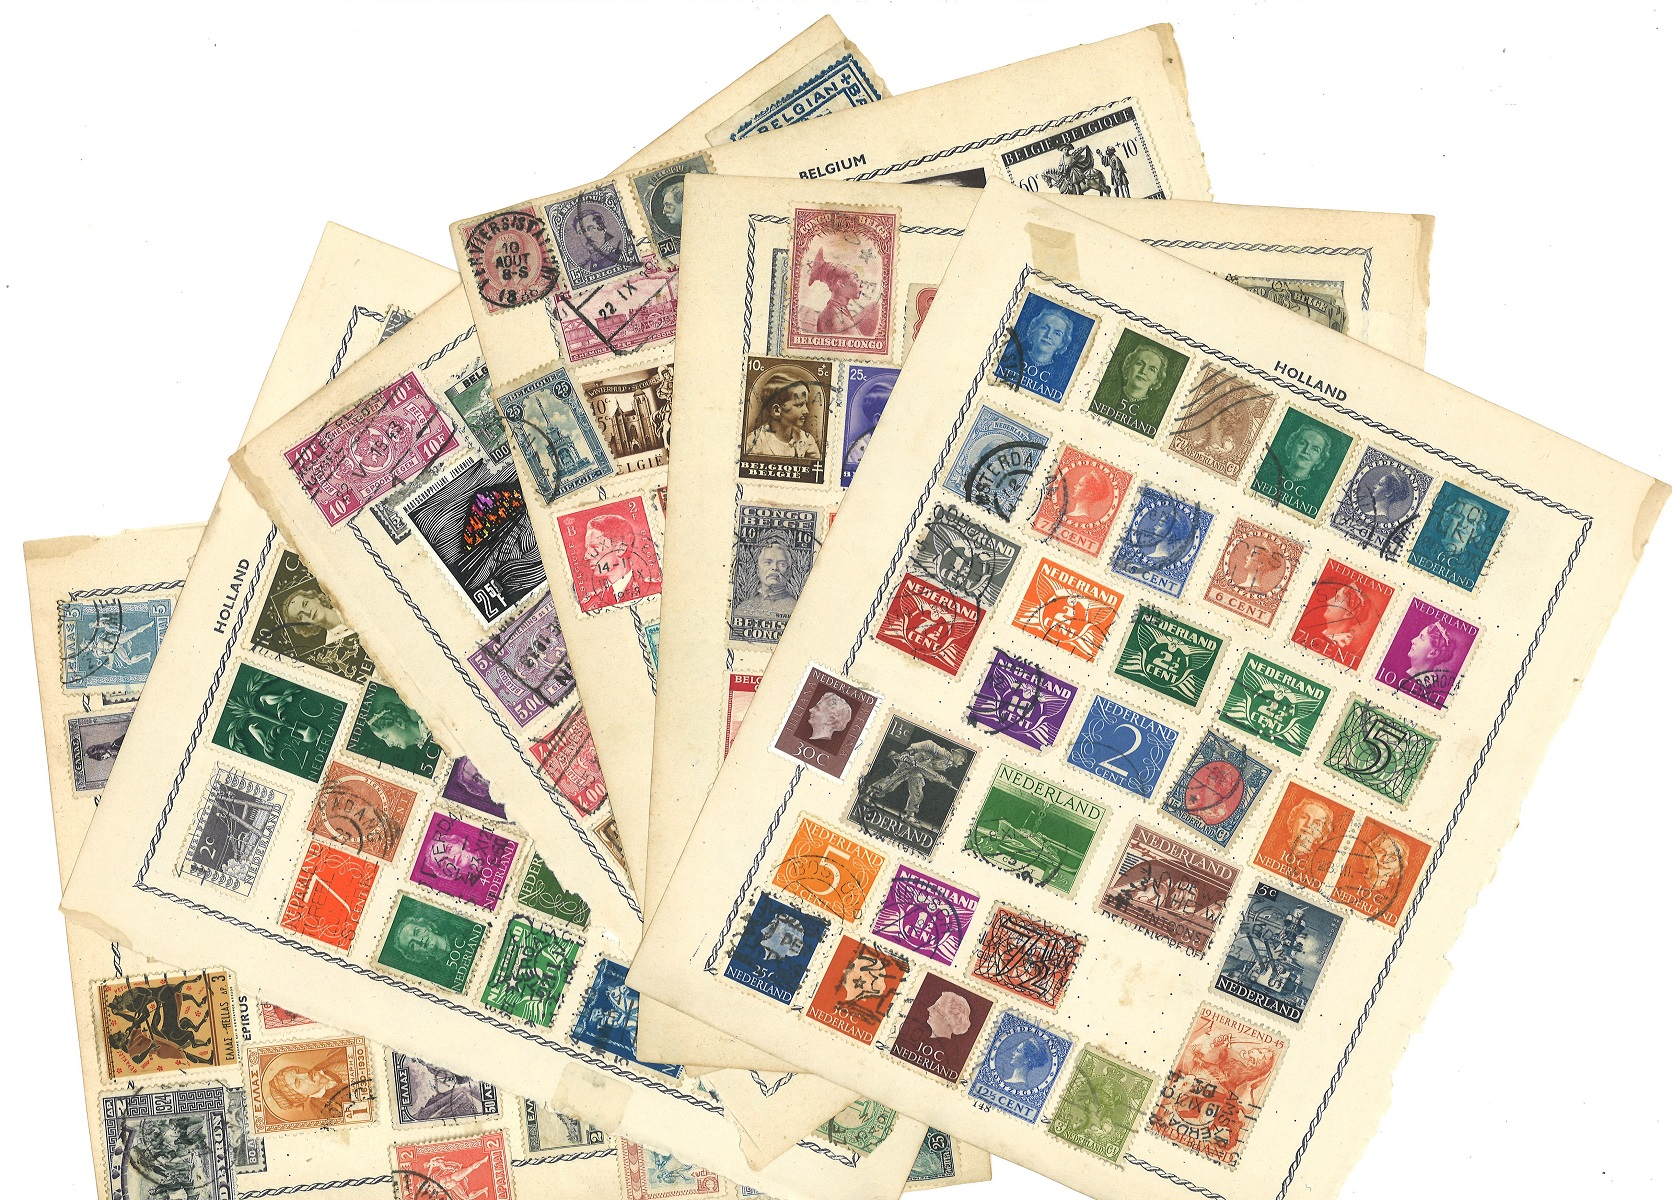 European stamp collection 9 loose album pages countries include Belgium, Holland and Greece. Good